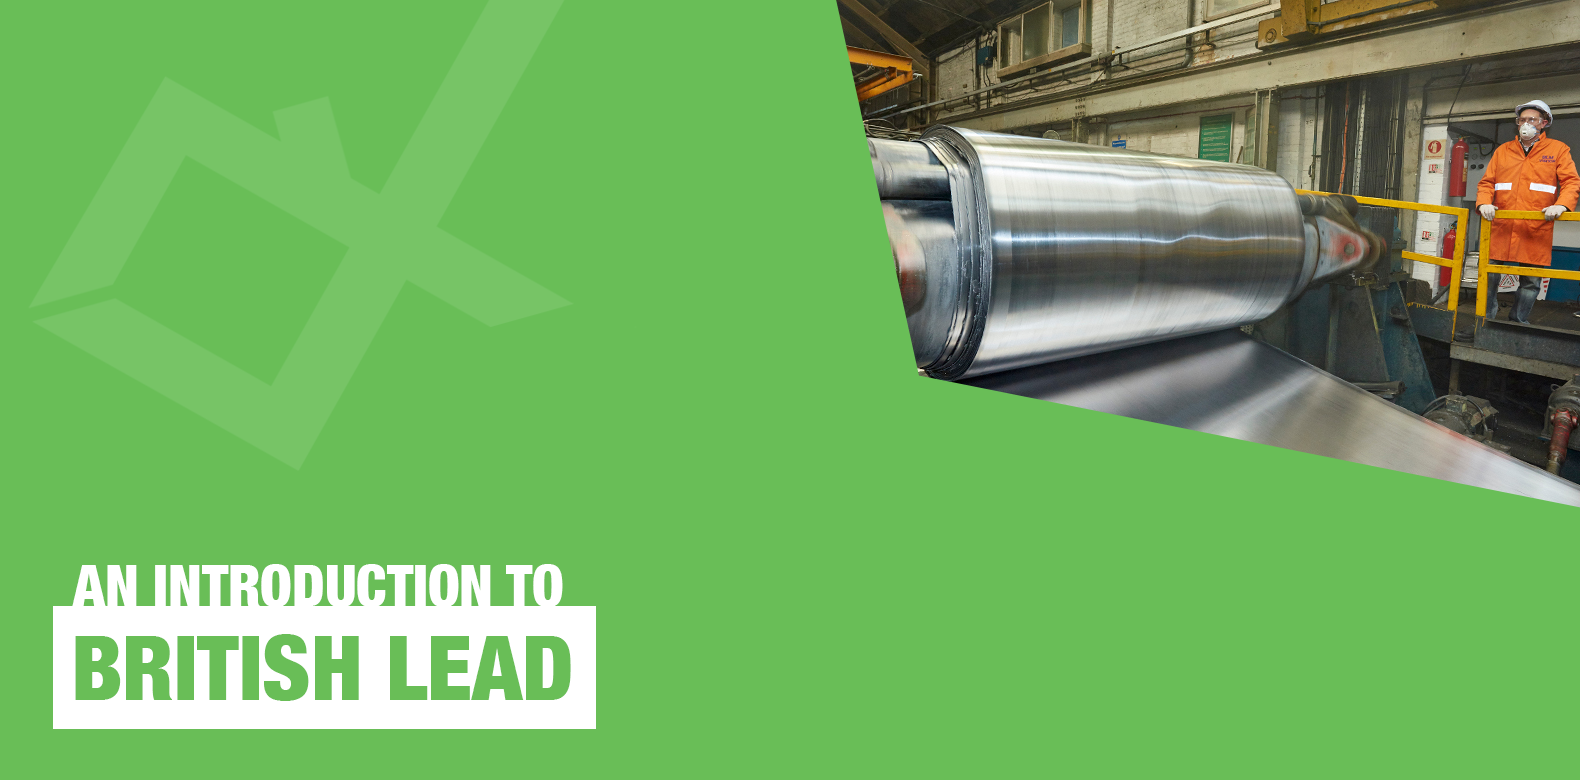 An Introduction to British Lead